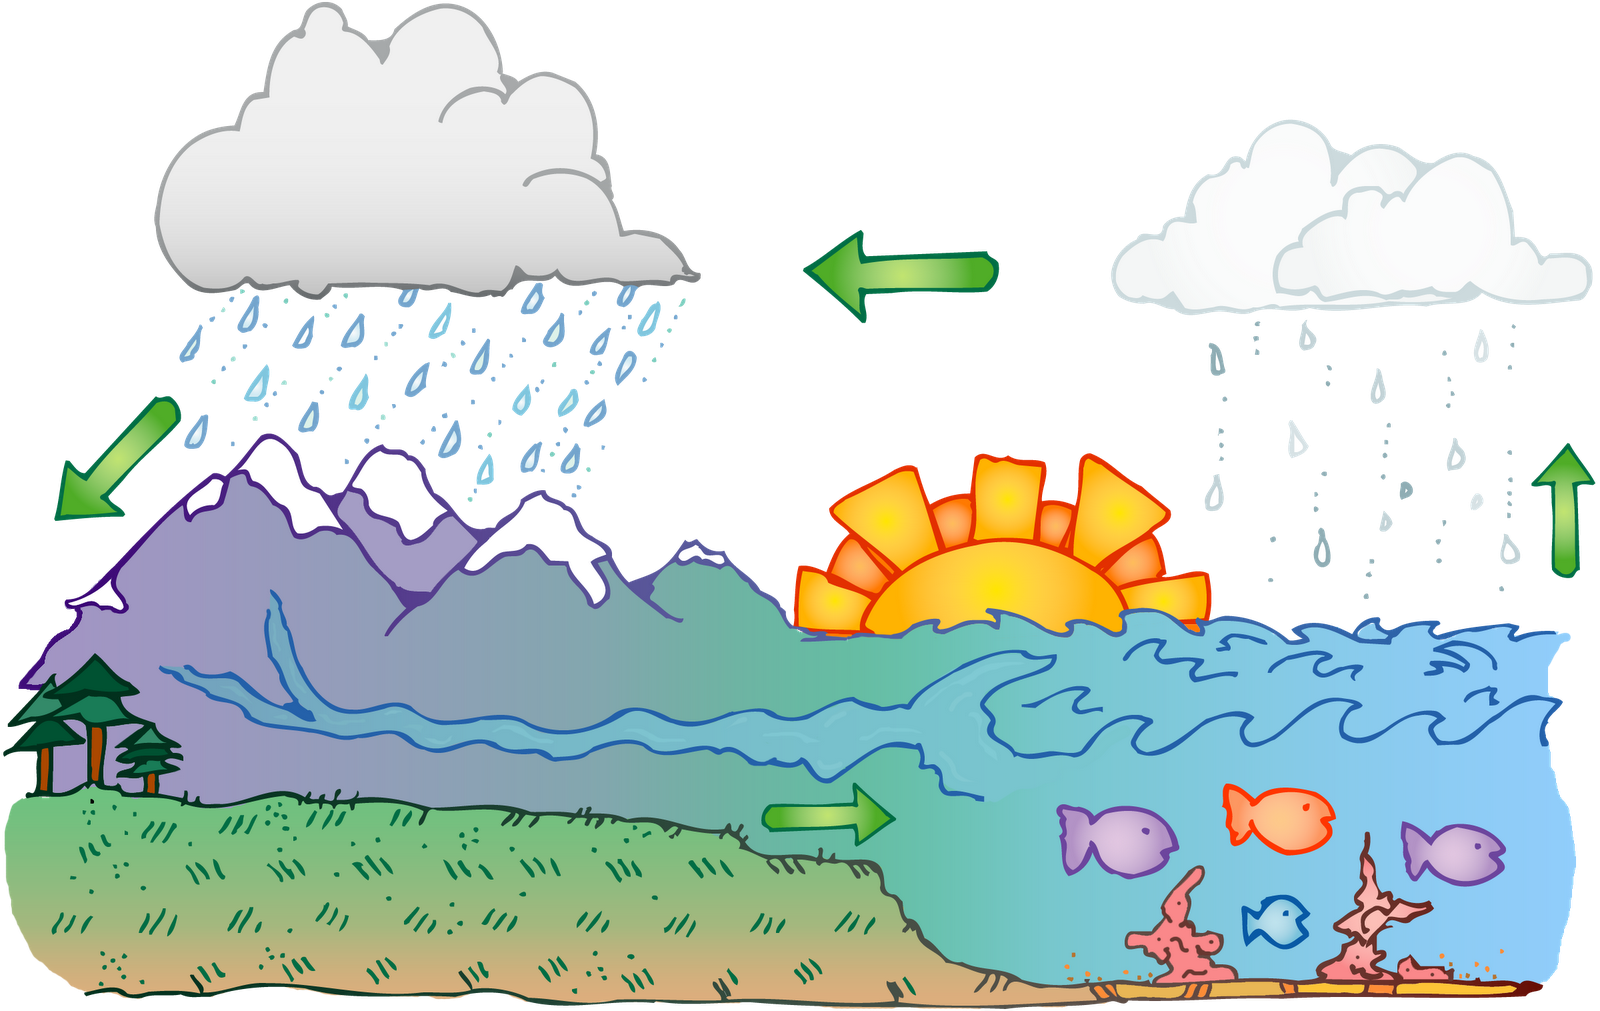 Water Cycle Clip Art. Water Cycle Classr-Water Cycle Clip Art. Water Cycle Classroom .-13